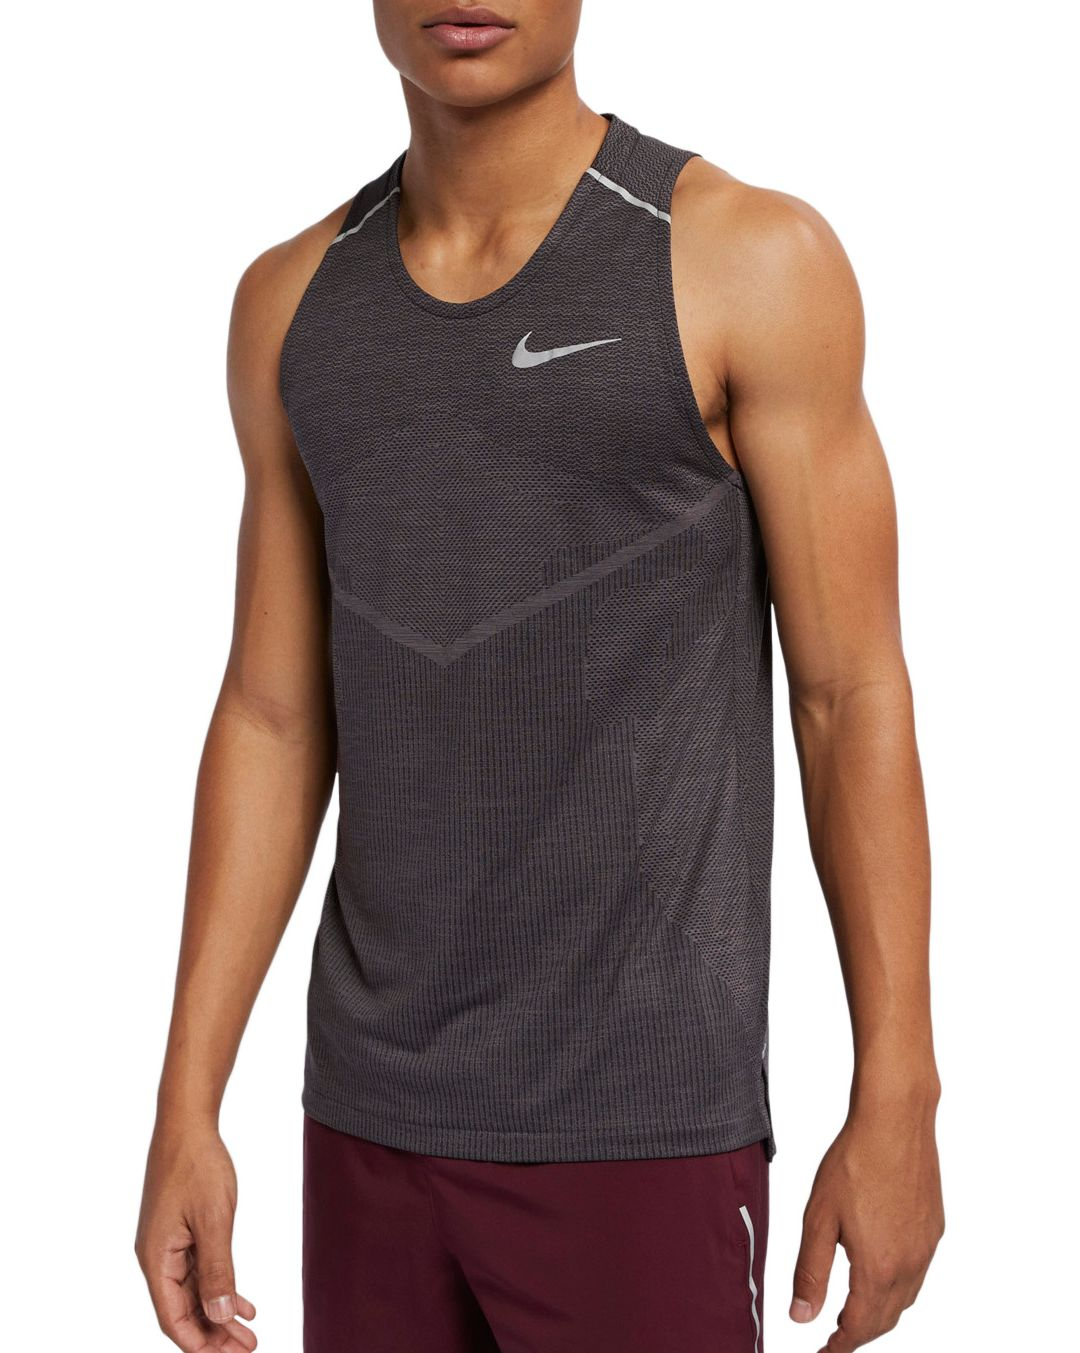 Nike Men's TechKnit Ultra Running Tank Top